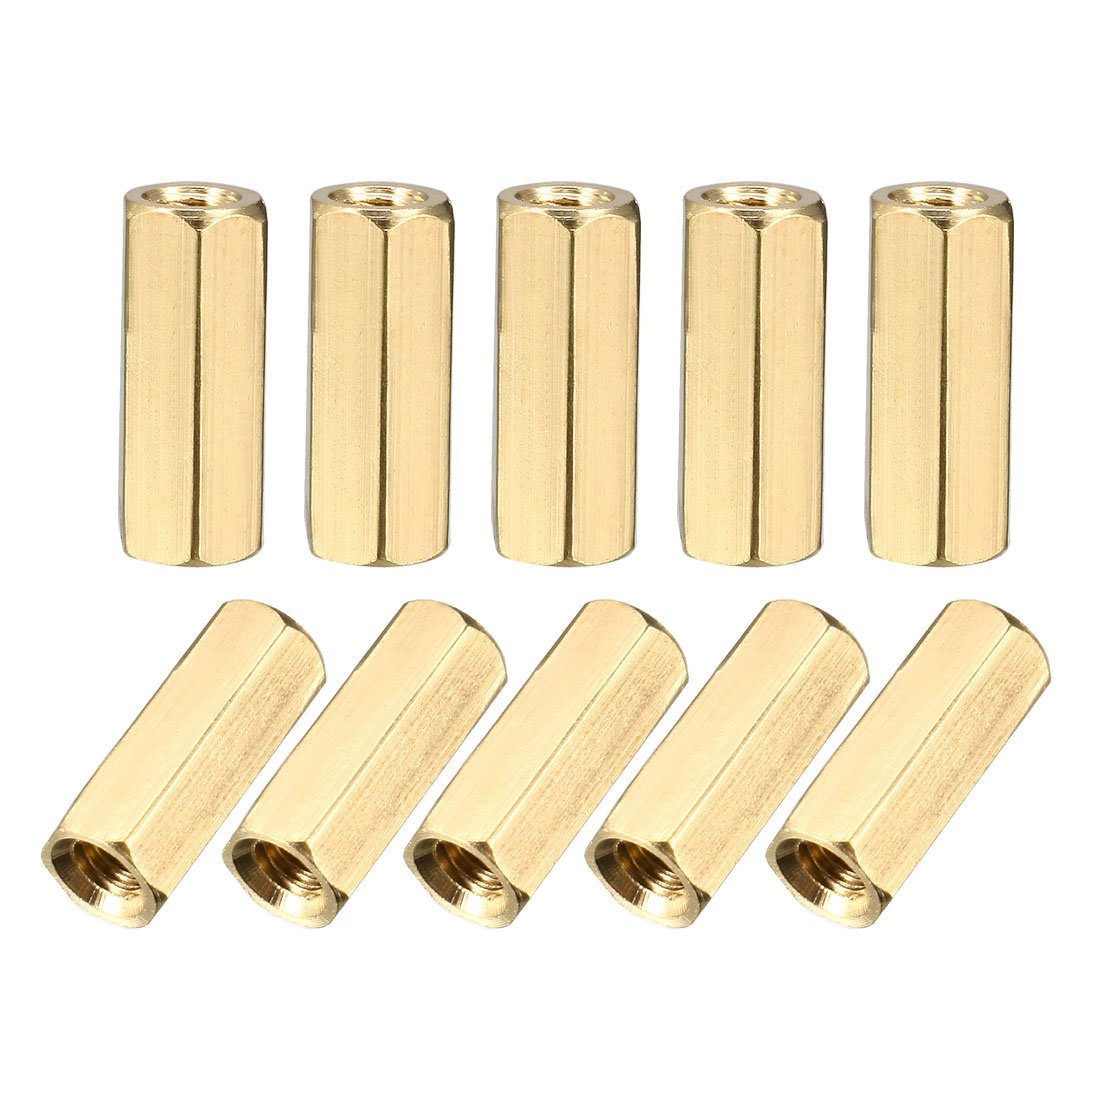 200Pcs M3 x 12mm Female Thread Gold Tone Brass Pillar PCB Hexagonal Nut Standoff Spacer